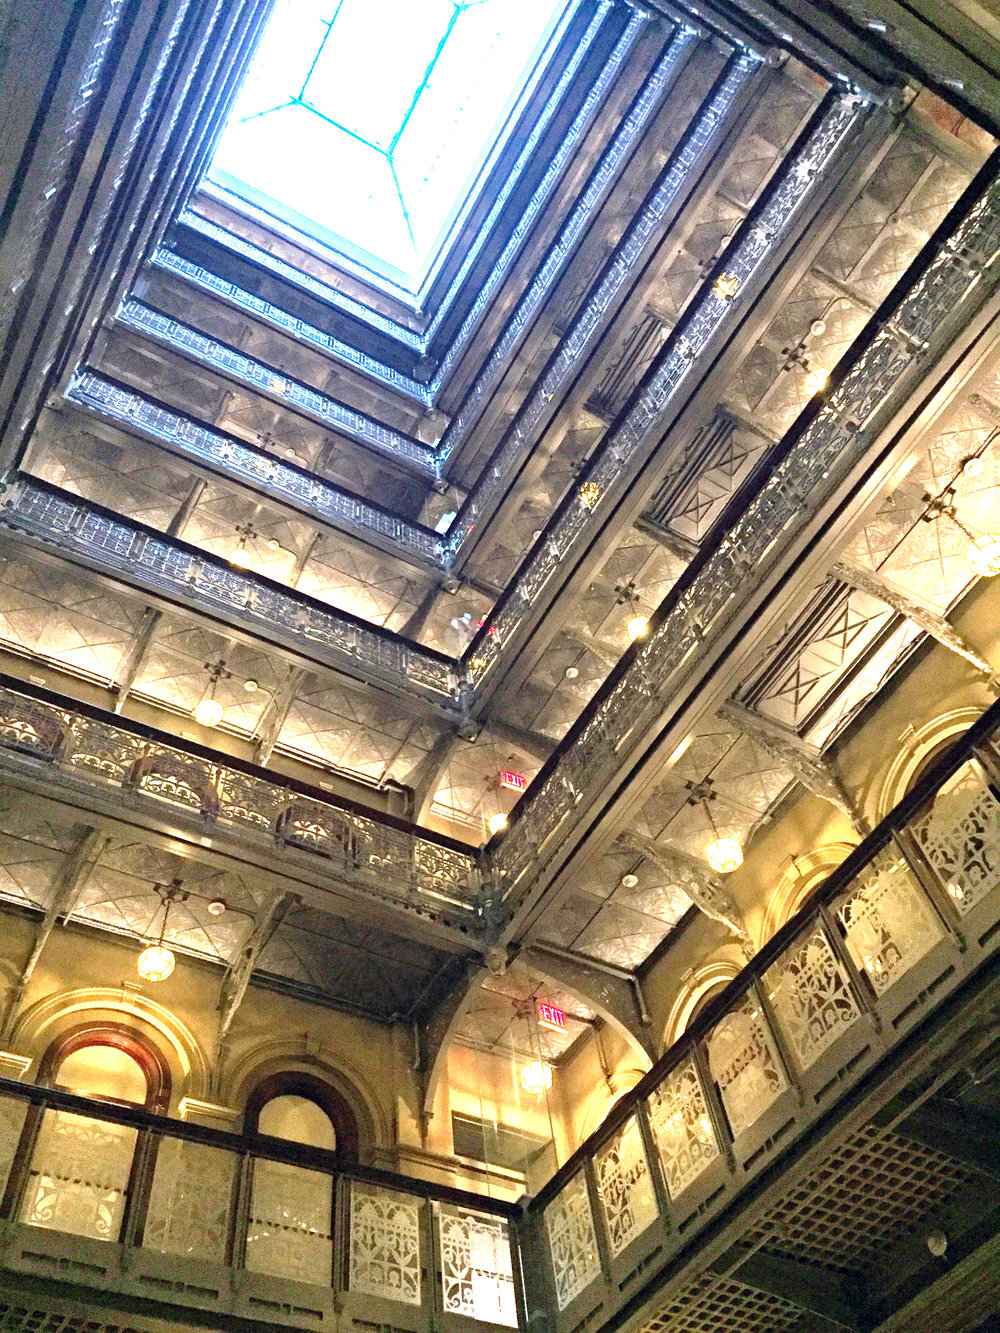 The Beekman Atrium